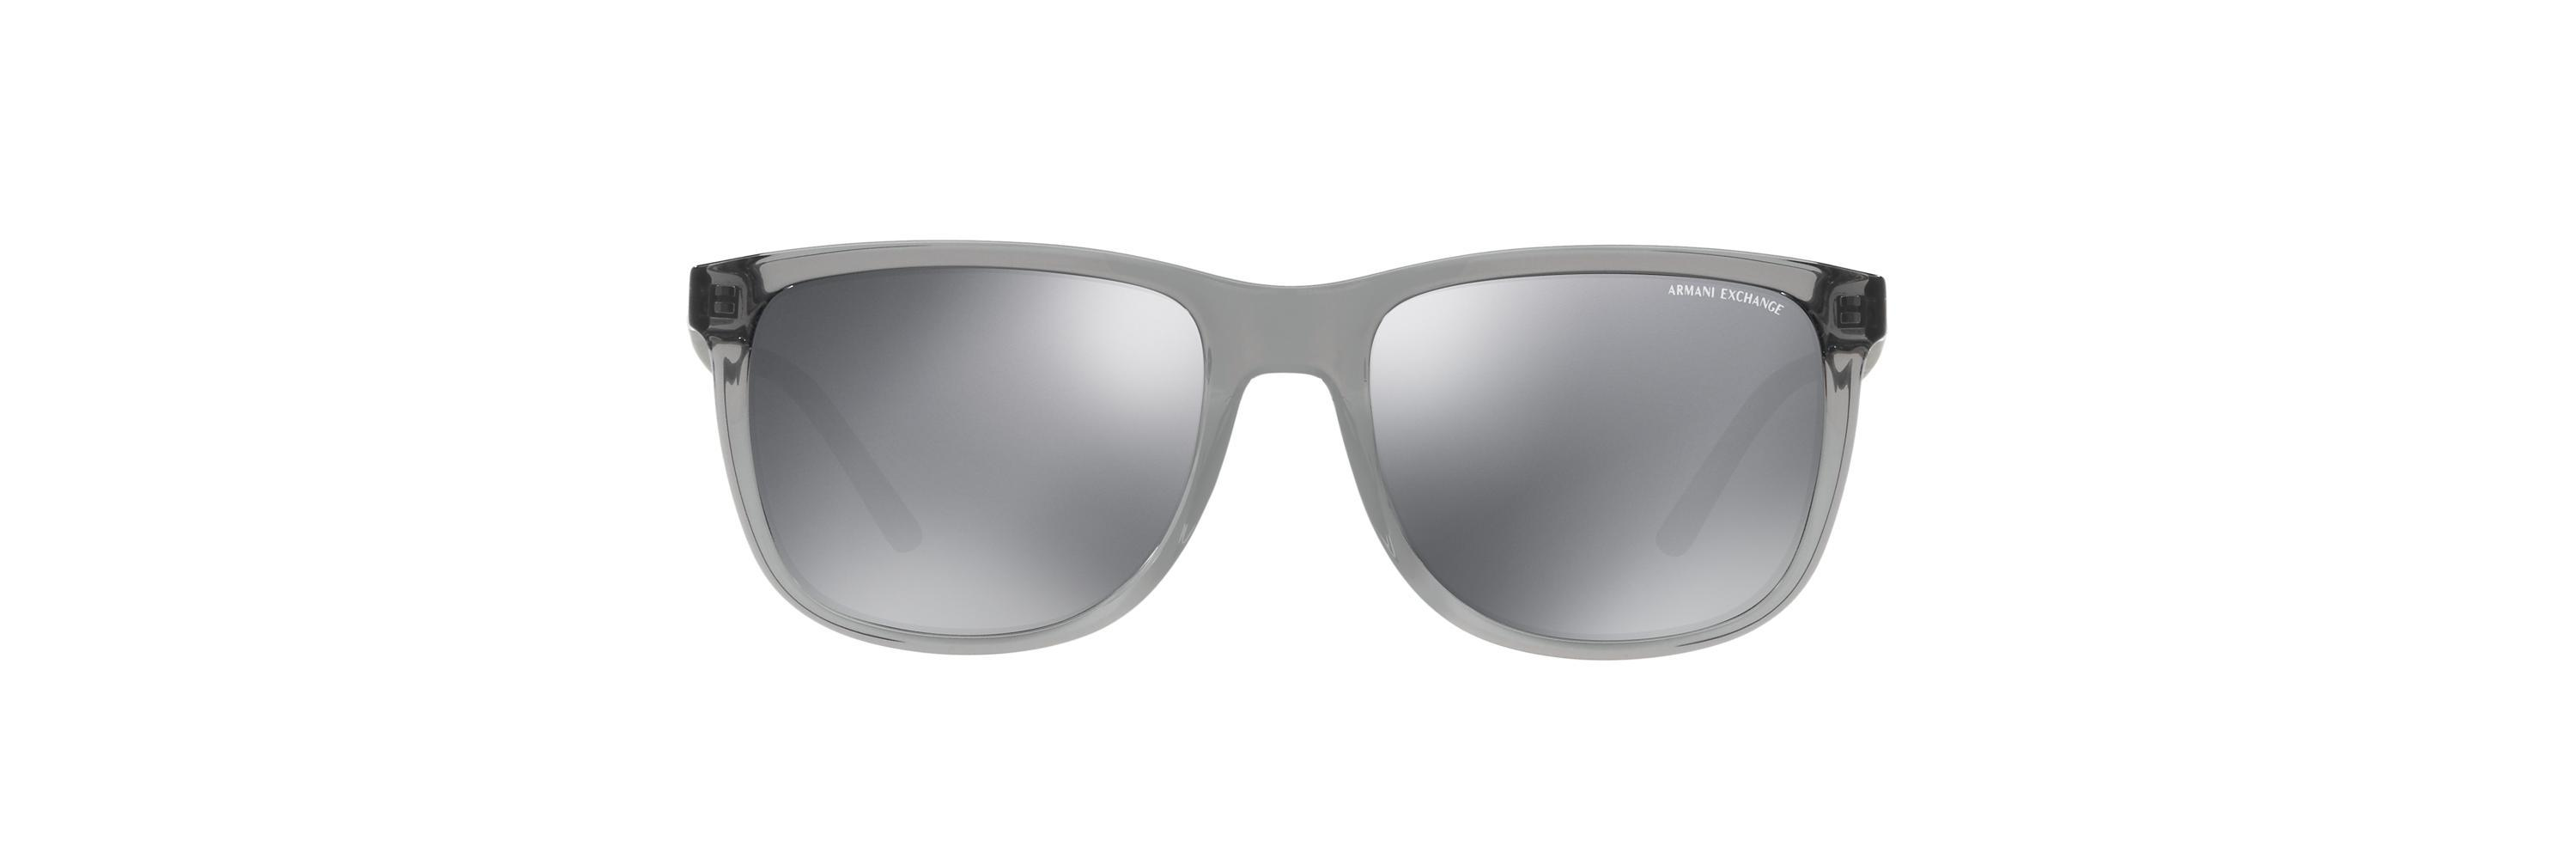 c00a54eac355 Lyst - Armani Exchange Ax4070s in Gray